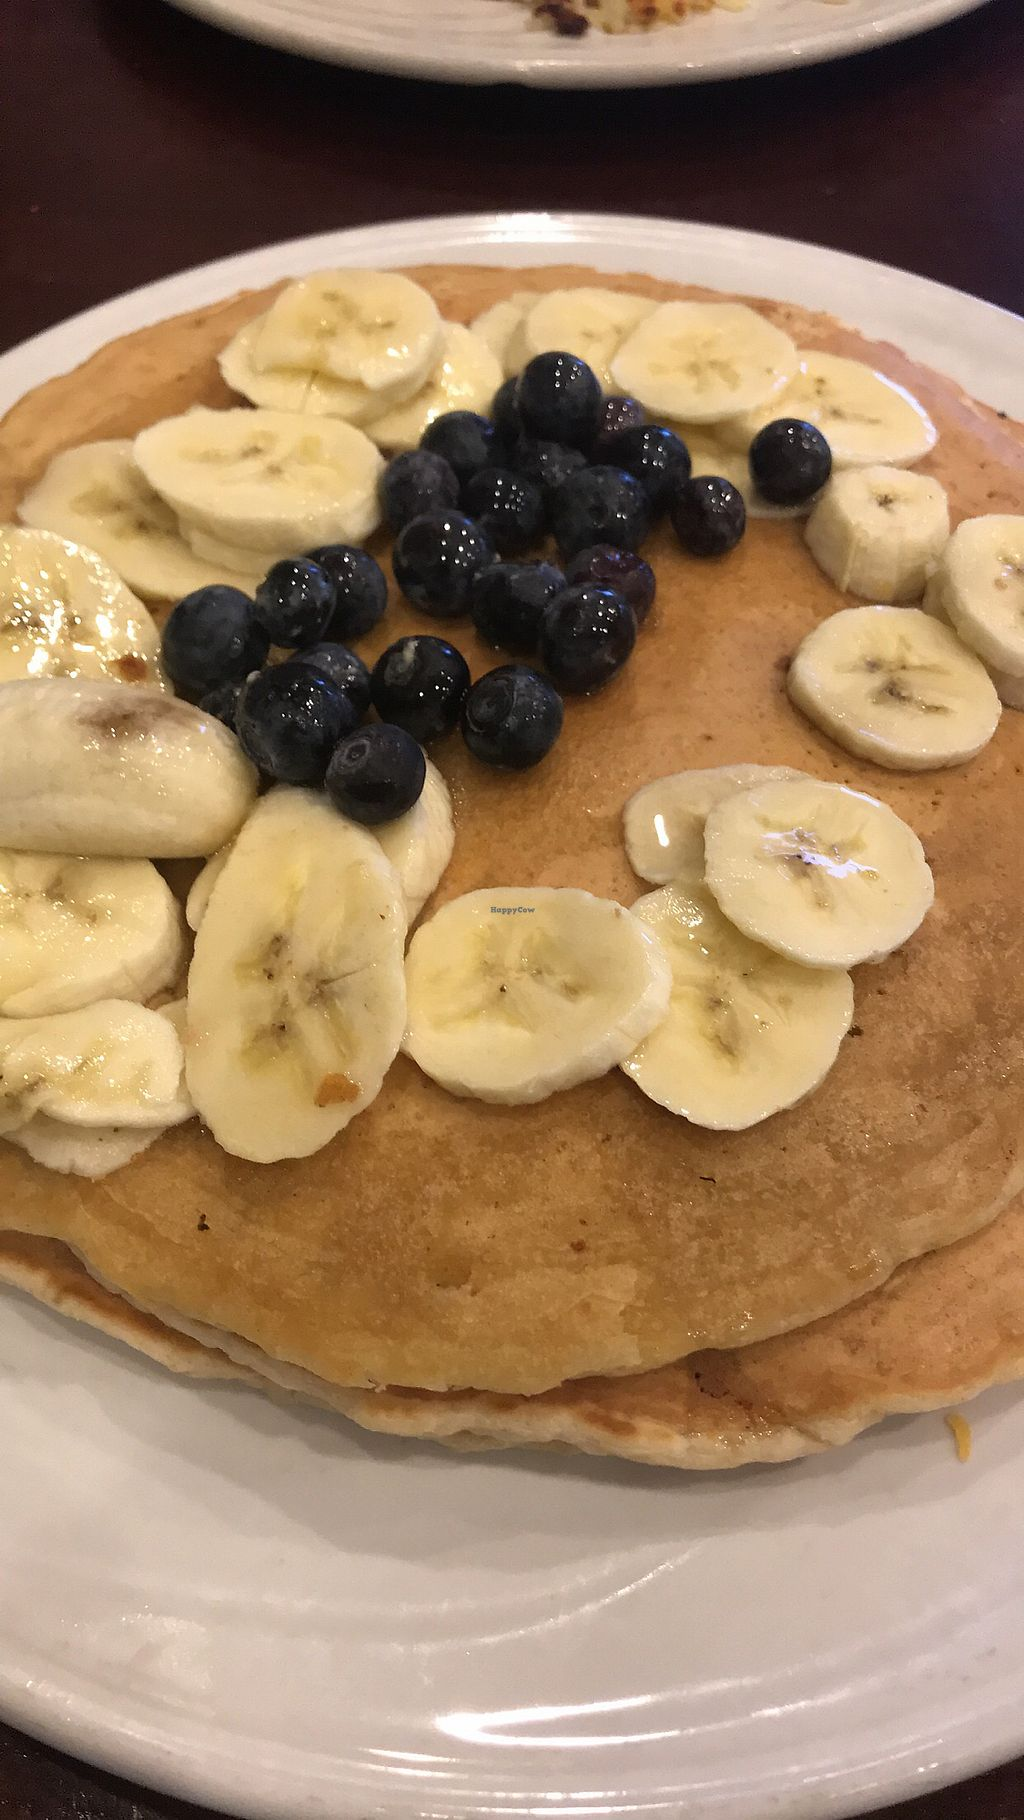 """Photo of Southern Belles Pancake House  by <a href=""""/members/profile/Brittigno"""">Brittigno</a> <br/>Vegan oatmeal pancakes <br/> March 4, 2018  - <a href='/contact/abuse/image/86703/366353'>Report</a>"""